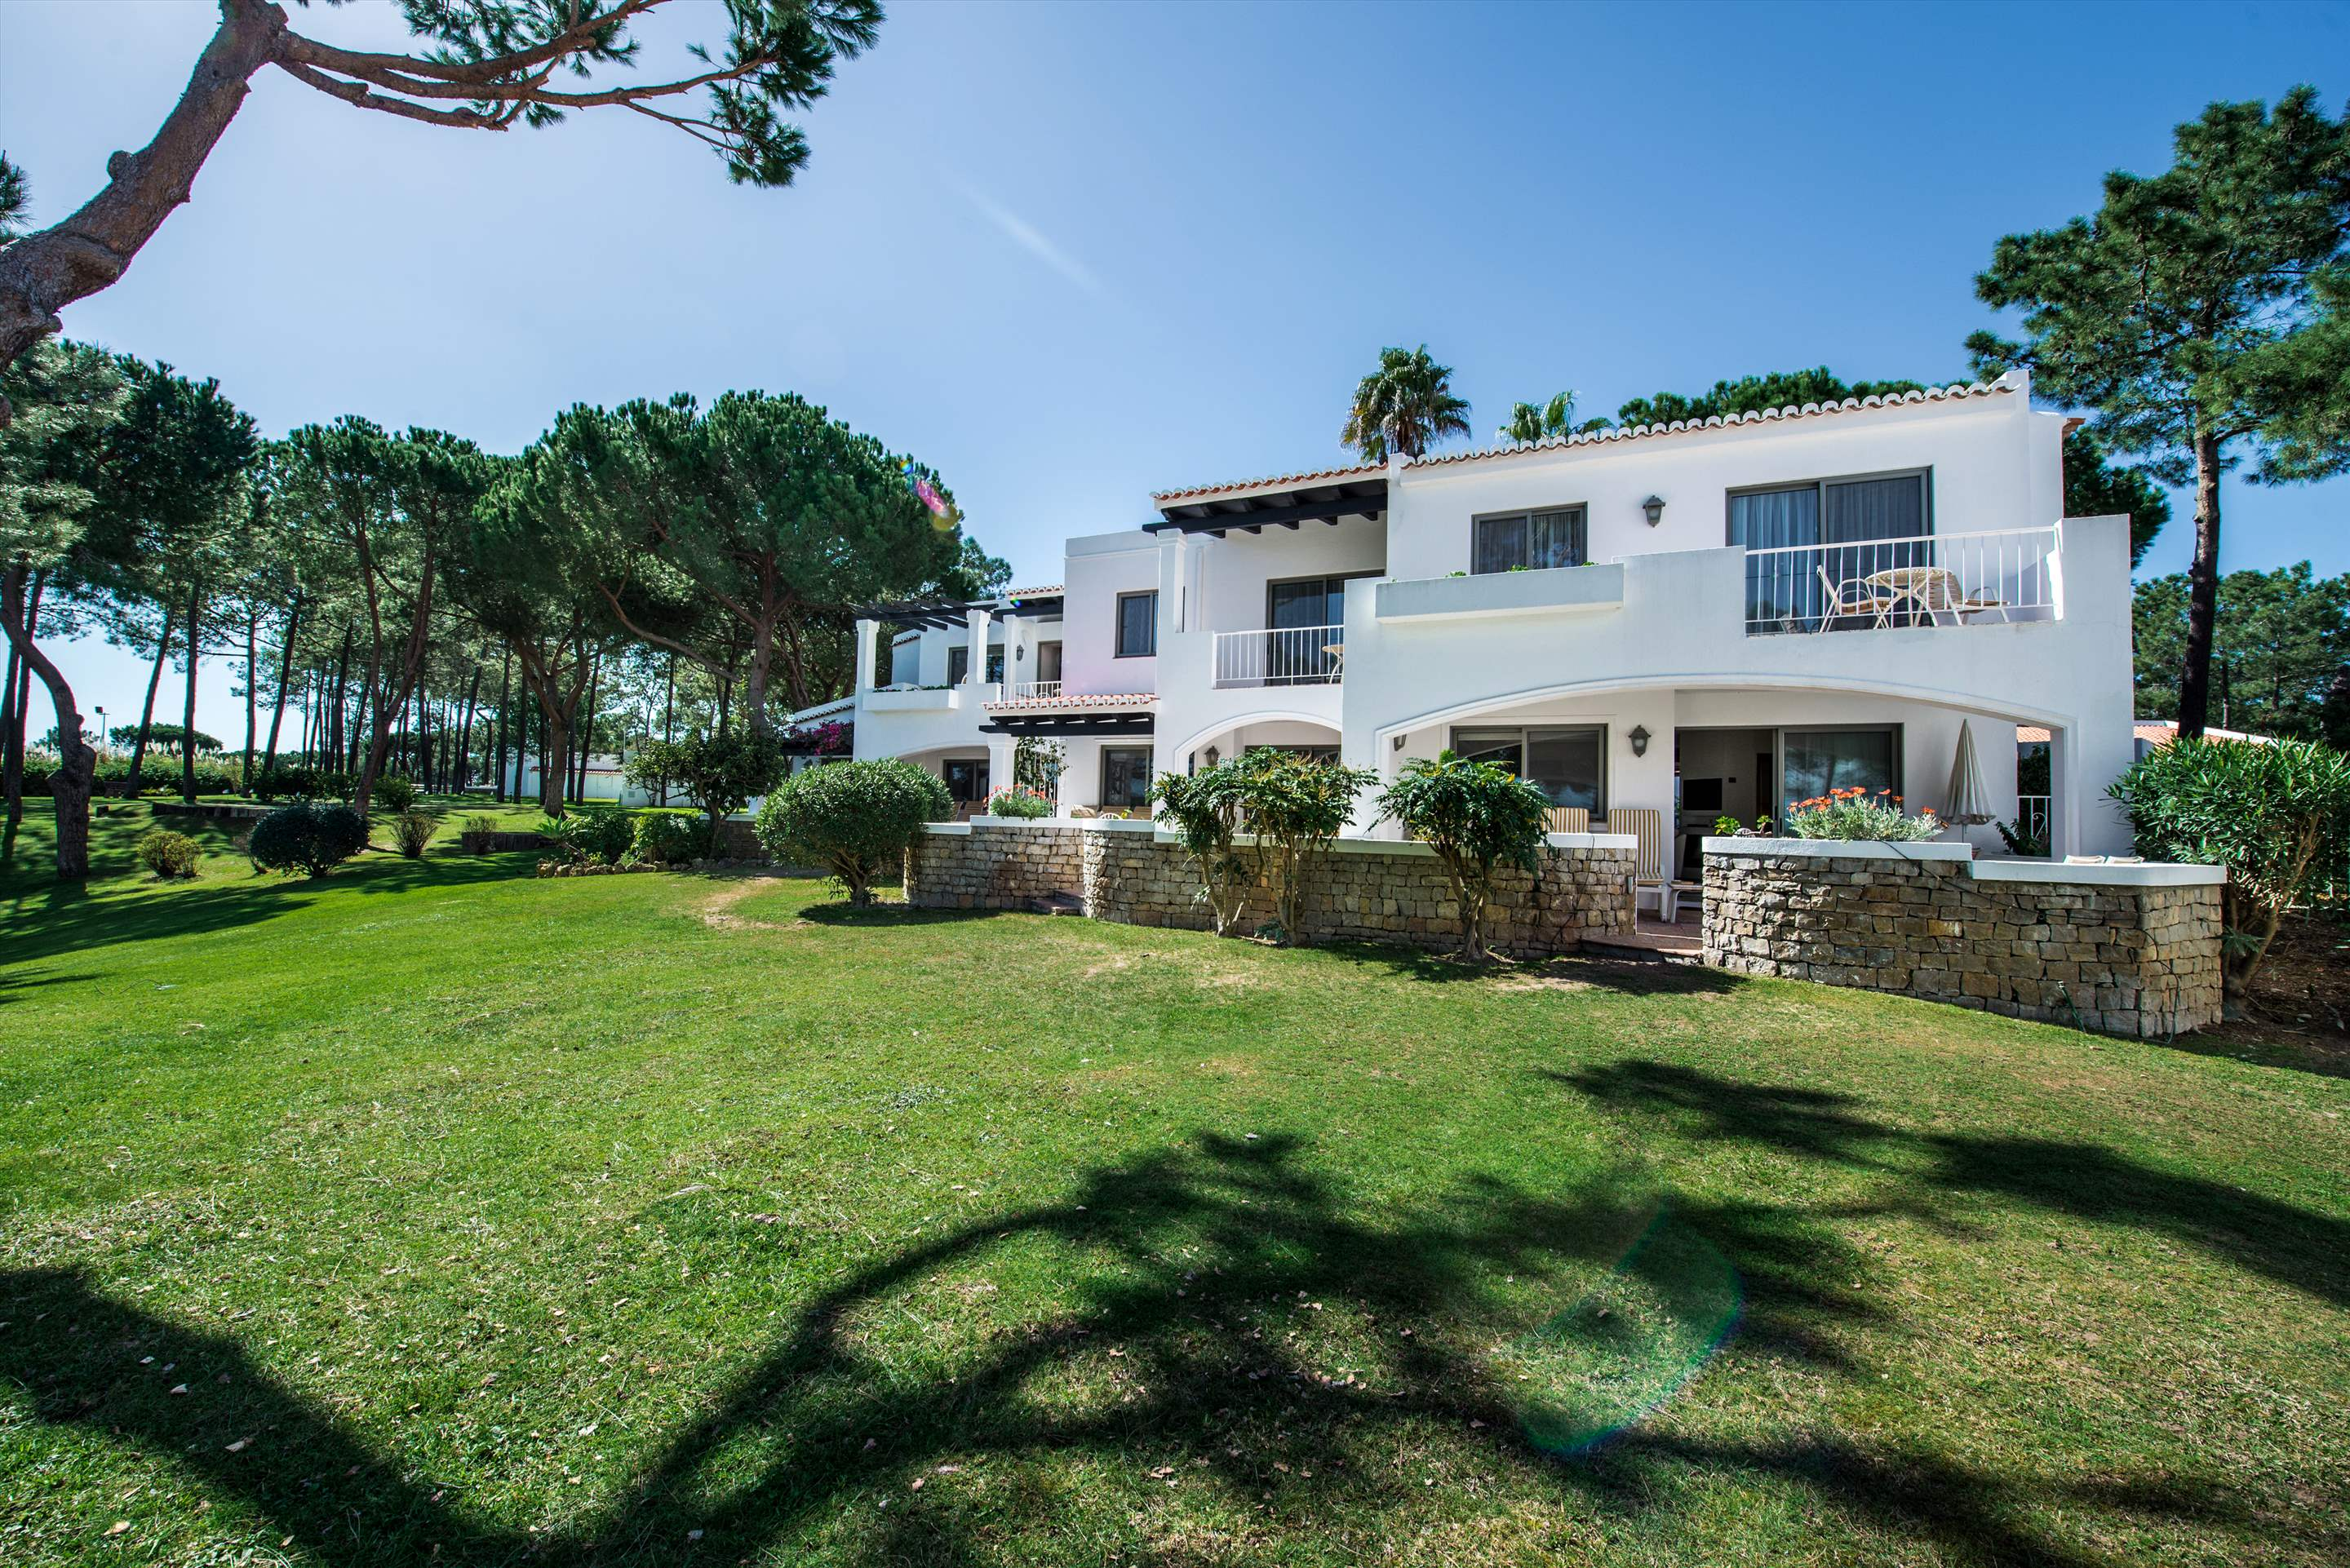 Four Seasons Country Club 1 bed, Superior - Saturday Arrival, 1 bedroom apartment in Four Seasons Country Club, Algarve Photo #1